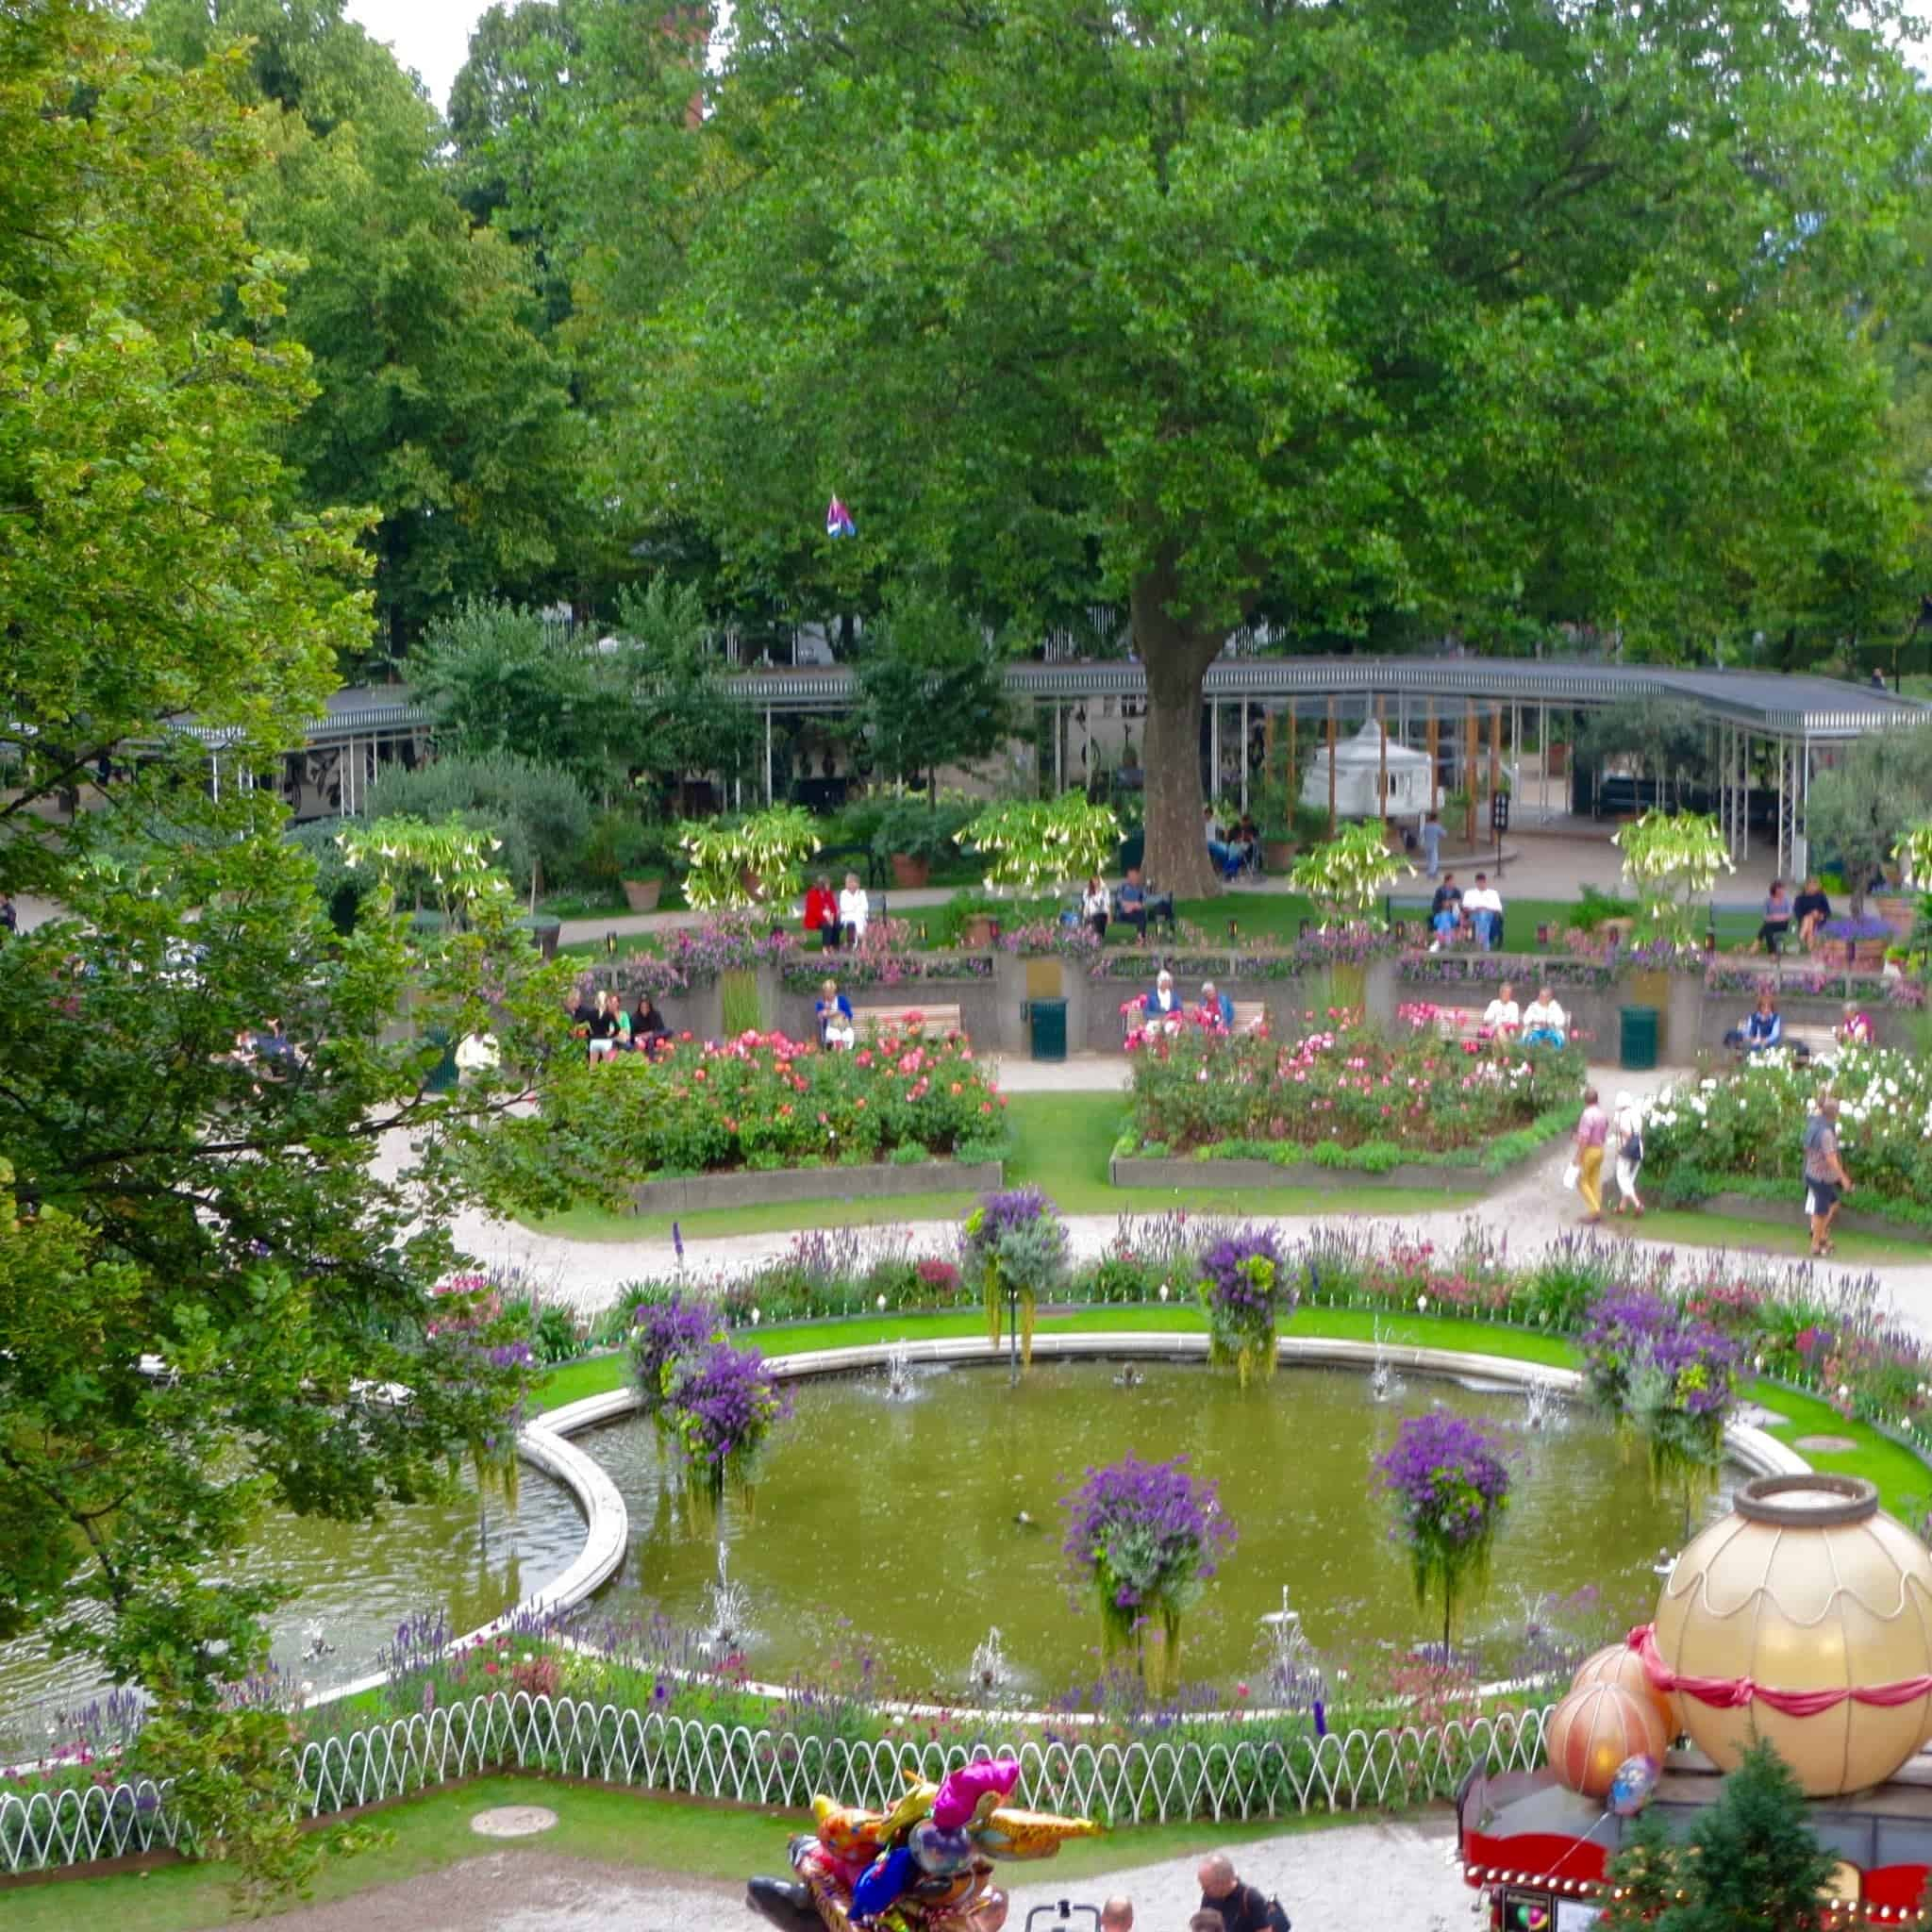 Tivoli Amusement Park Aarhus What To Do At Tivoli Gardens Unlimited Rides World On A